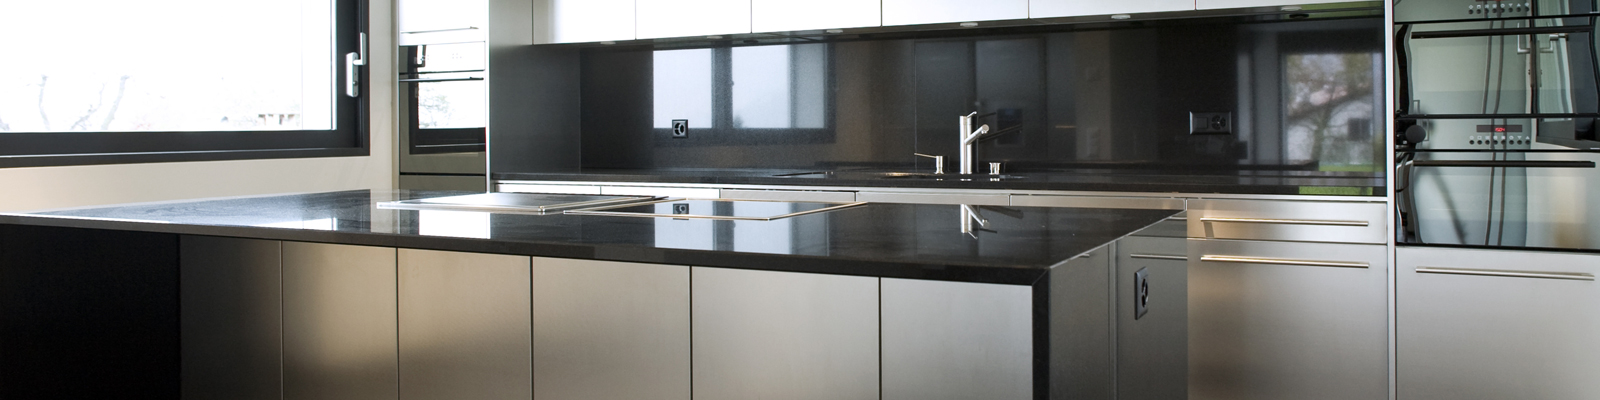 slider-stainless-cabinets